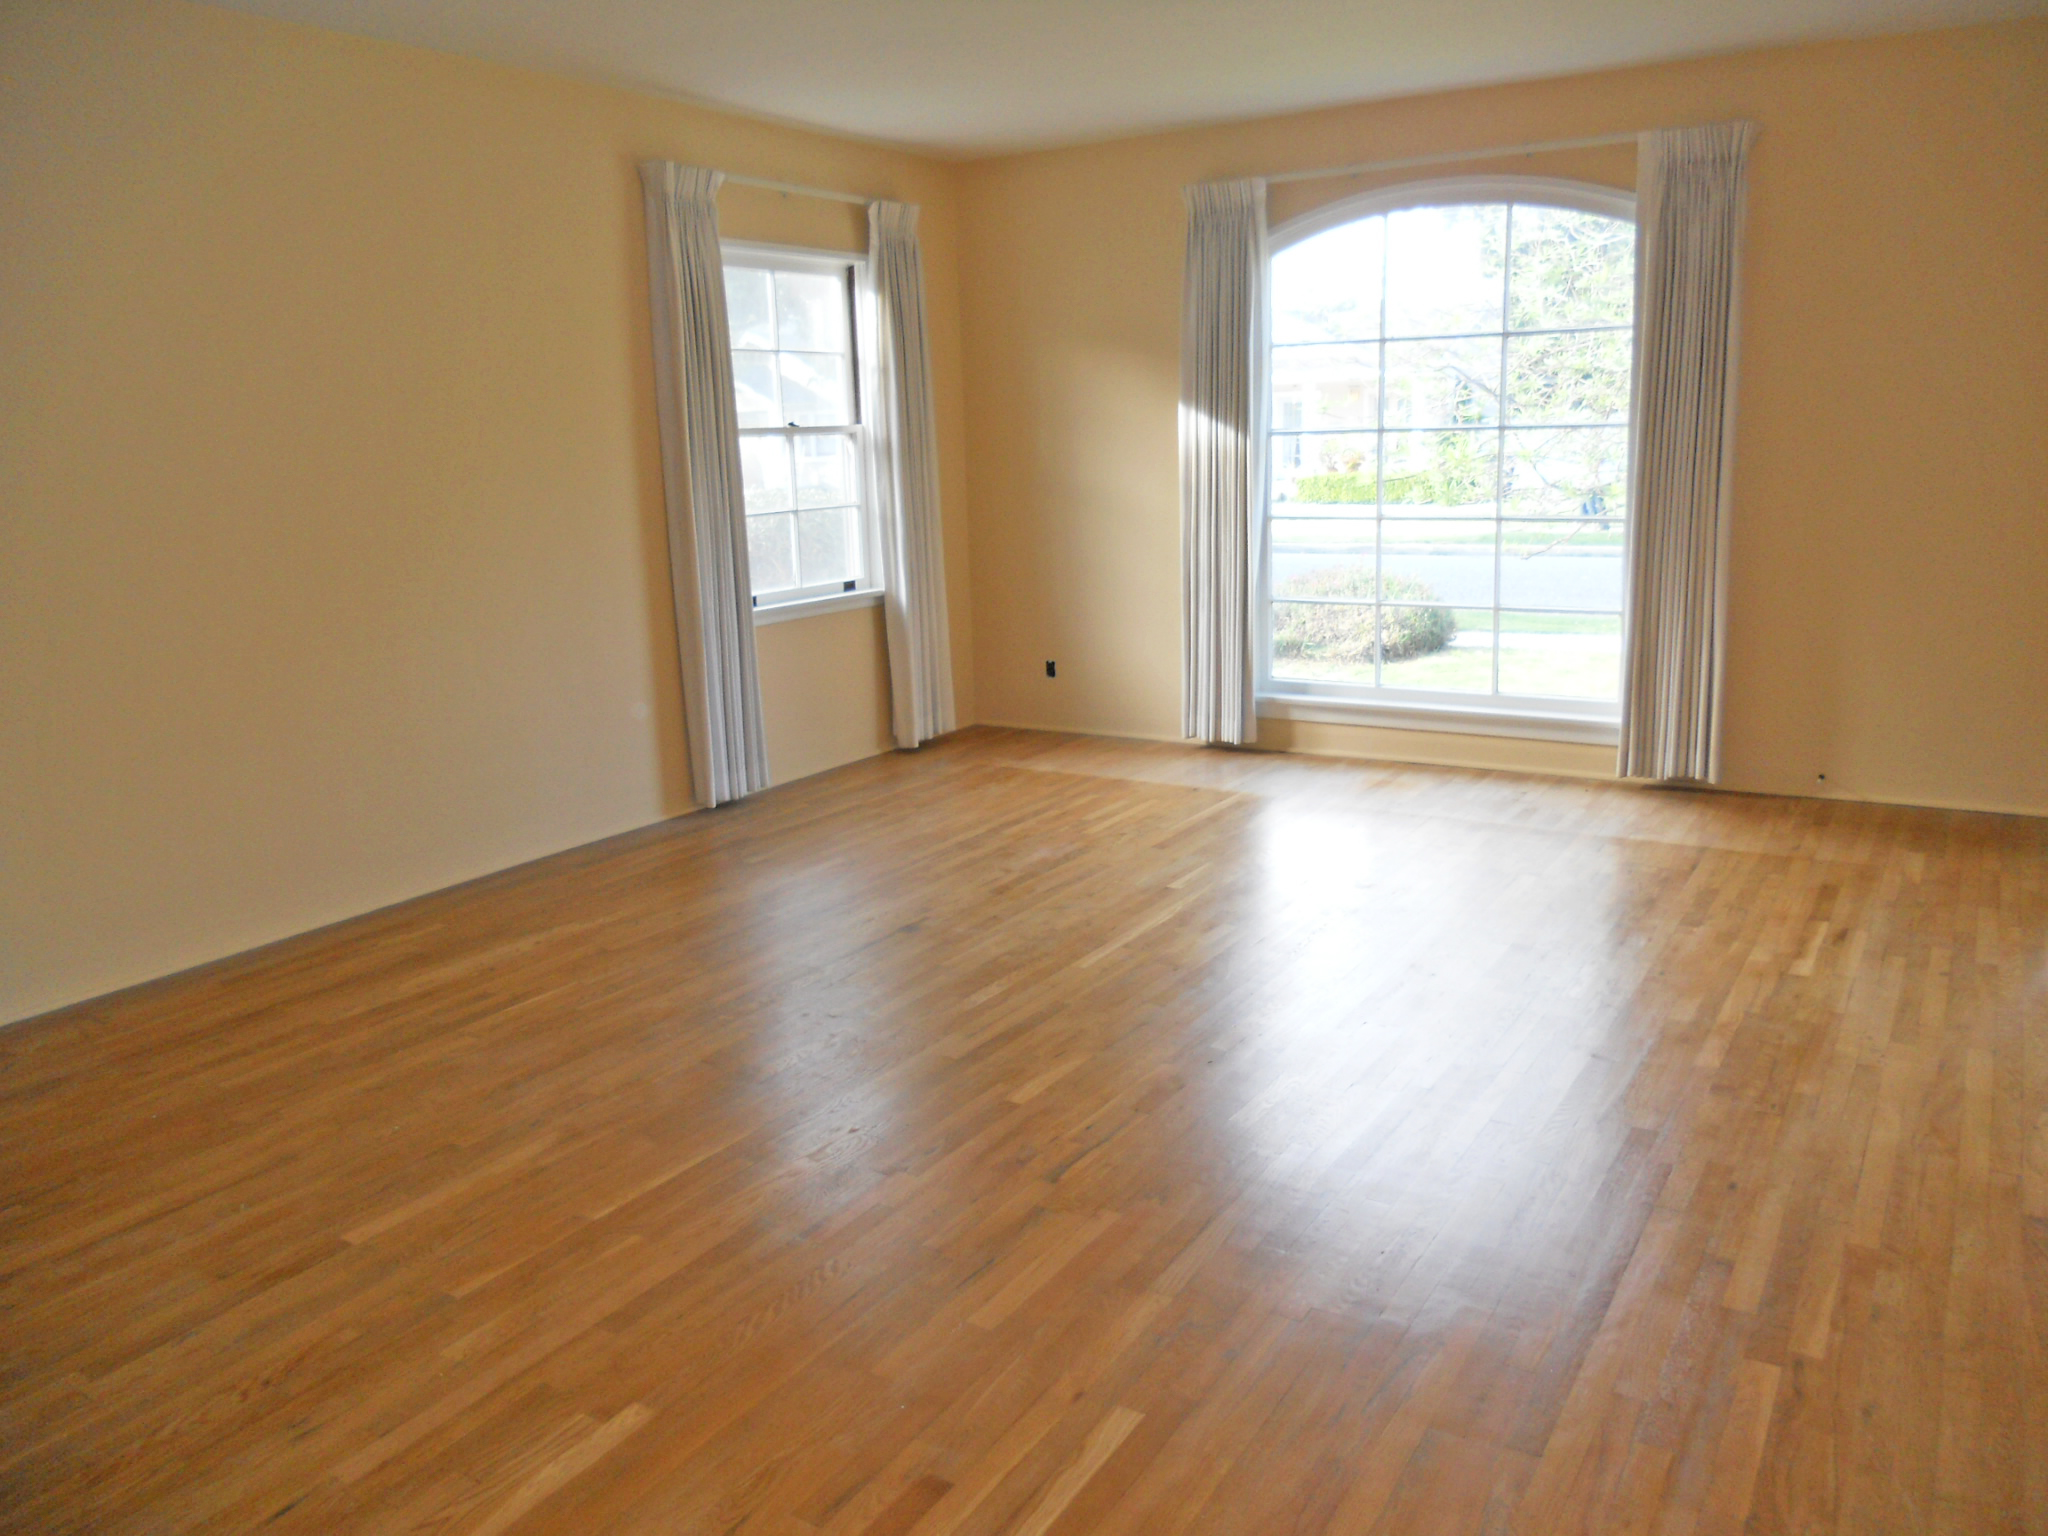 Spacious living room with original hardwood floors and large picture window.